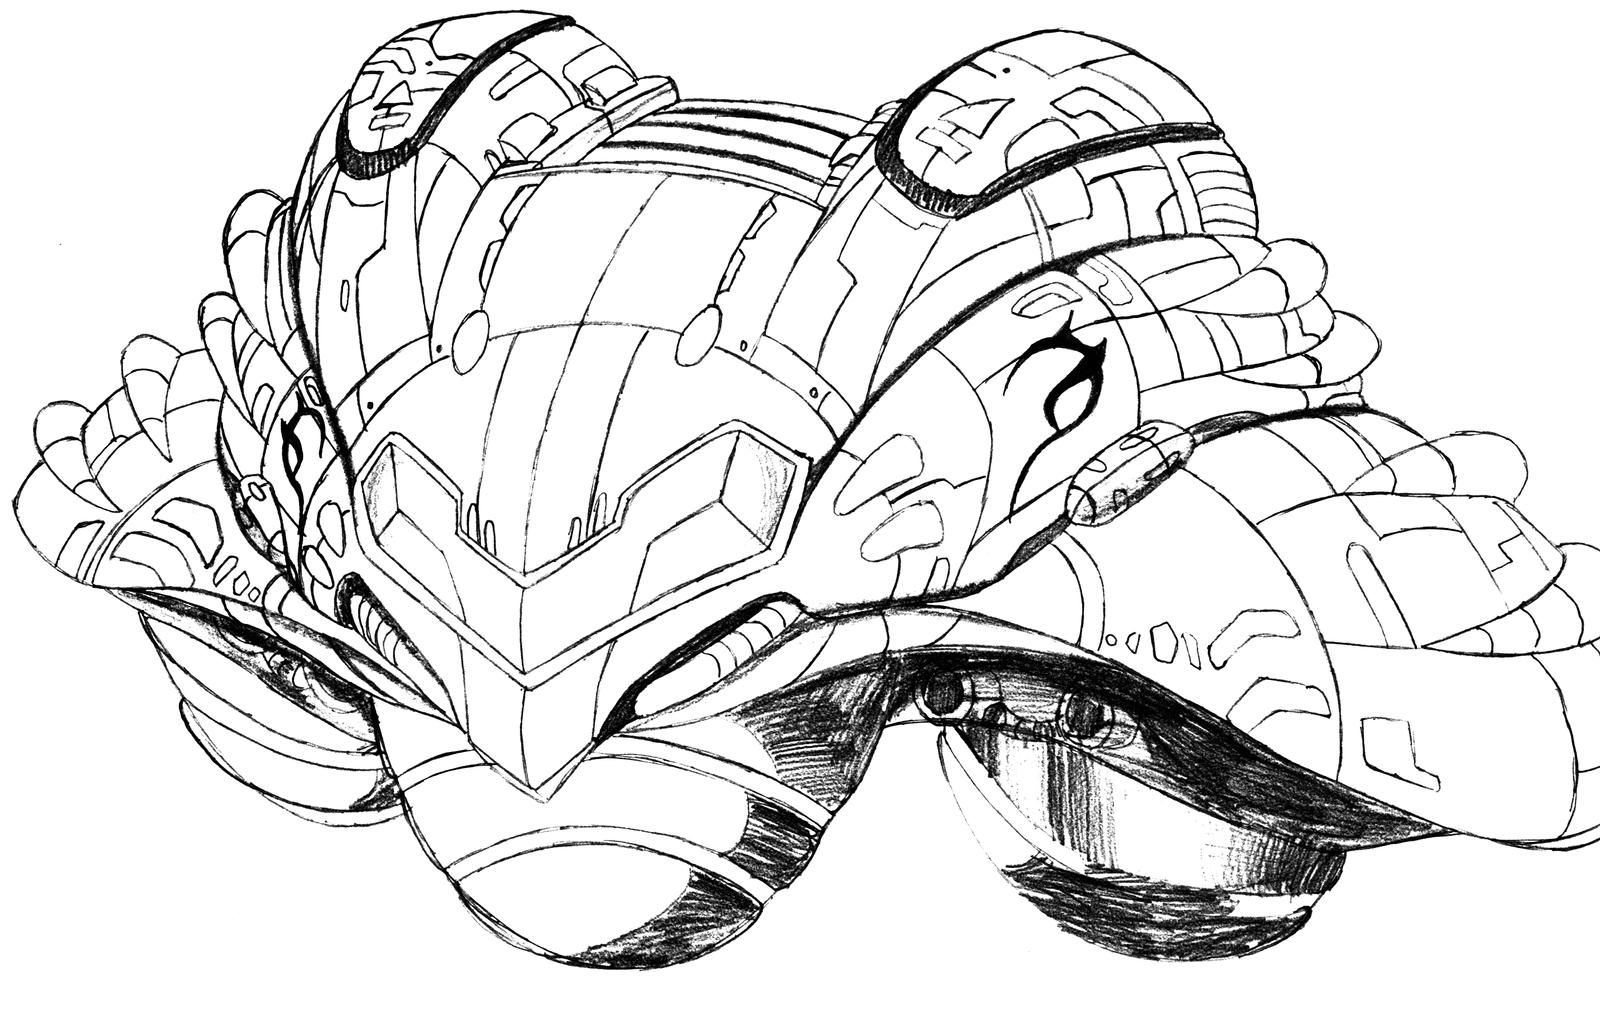 Samus Spaceship by Gradashi